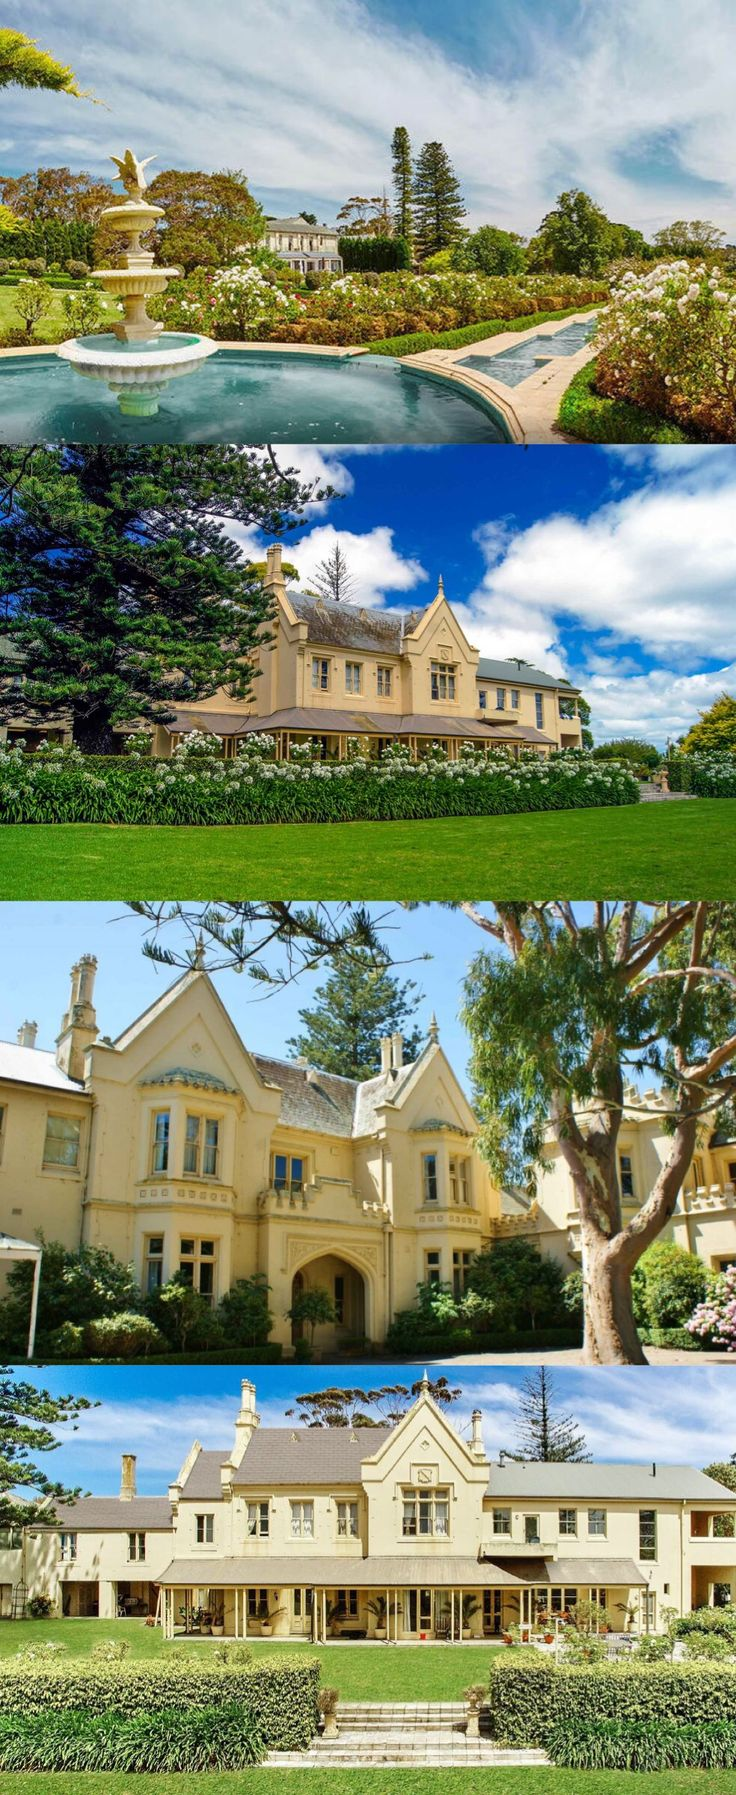 Morning Star, Mount Eliza (60km S of Melbourne), was purchased in 1865 by Londoner Francis A. Gillett, 12 yrs after arriving in the colony. He designed and built the Gothic Revival mansion (originally 'Sunnyside') in c1867-70. In 1932 the large beachfront estate was sold to the Catholic Church and, until 1975, became the notorious Morning Star Boys' Home. Used as a hotel and restaurant since then; sold June 2017 to a Chinese investor for $36.2 million.